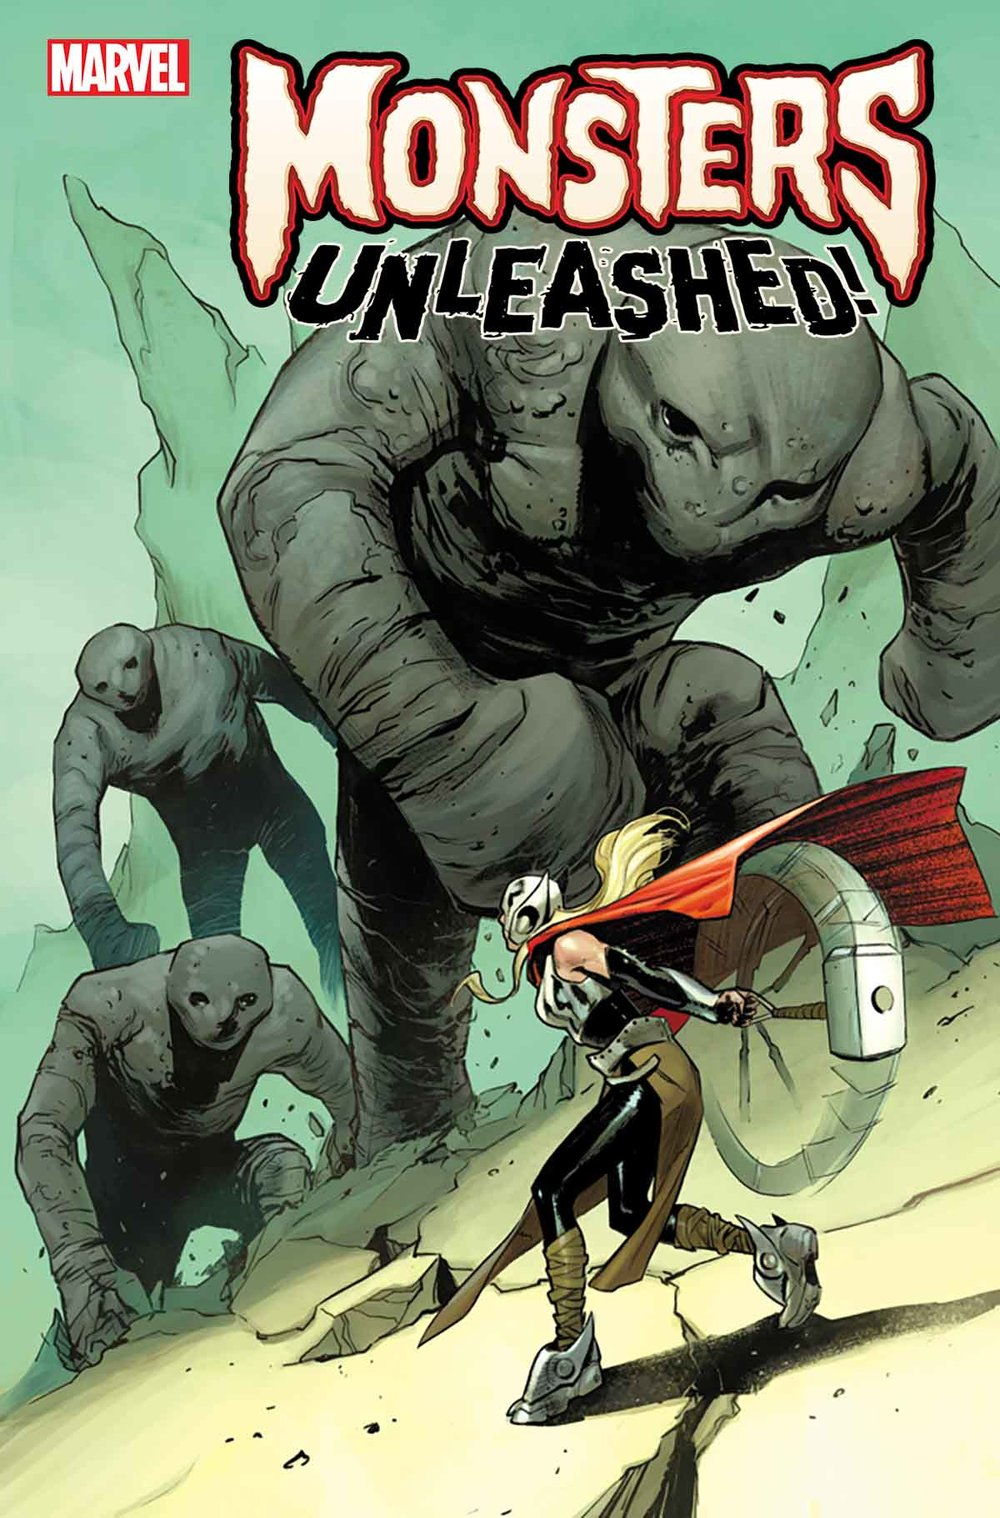 marvel-reveals-monsters-unleashed-variant-cover-art6